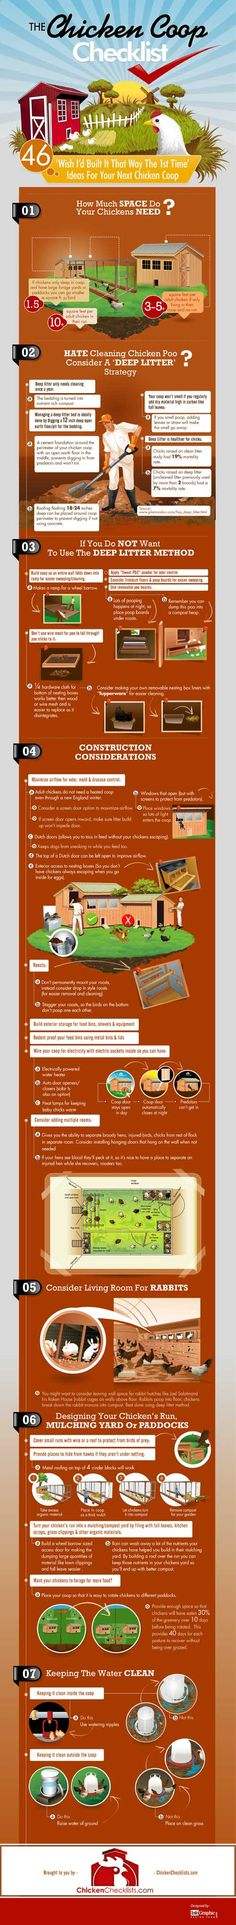 This is an infographic on chicken coop. It contains 46 ideas on how to build the best chicken coop. The checklist is divided into 7 parts which mainly